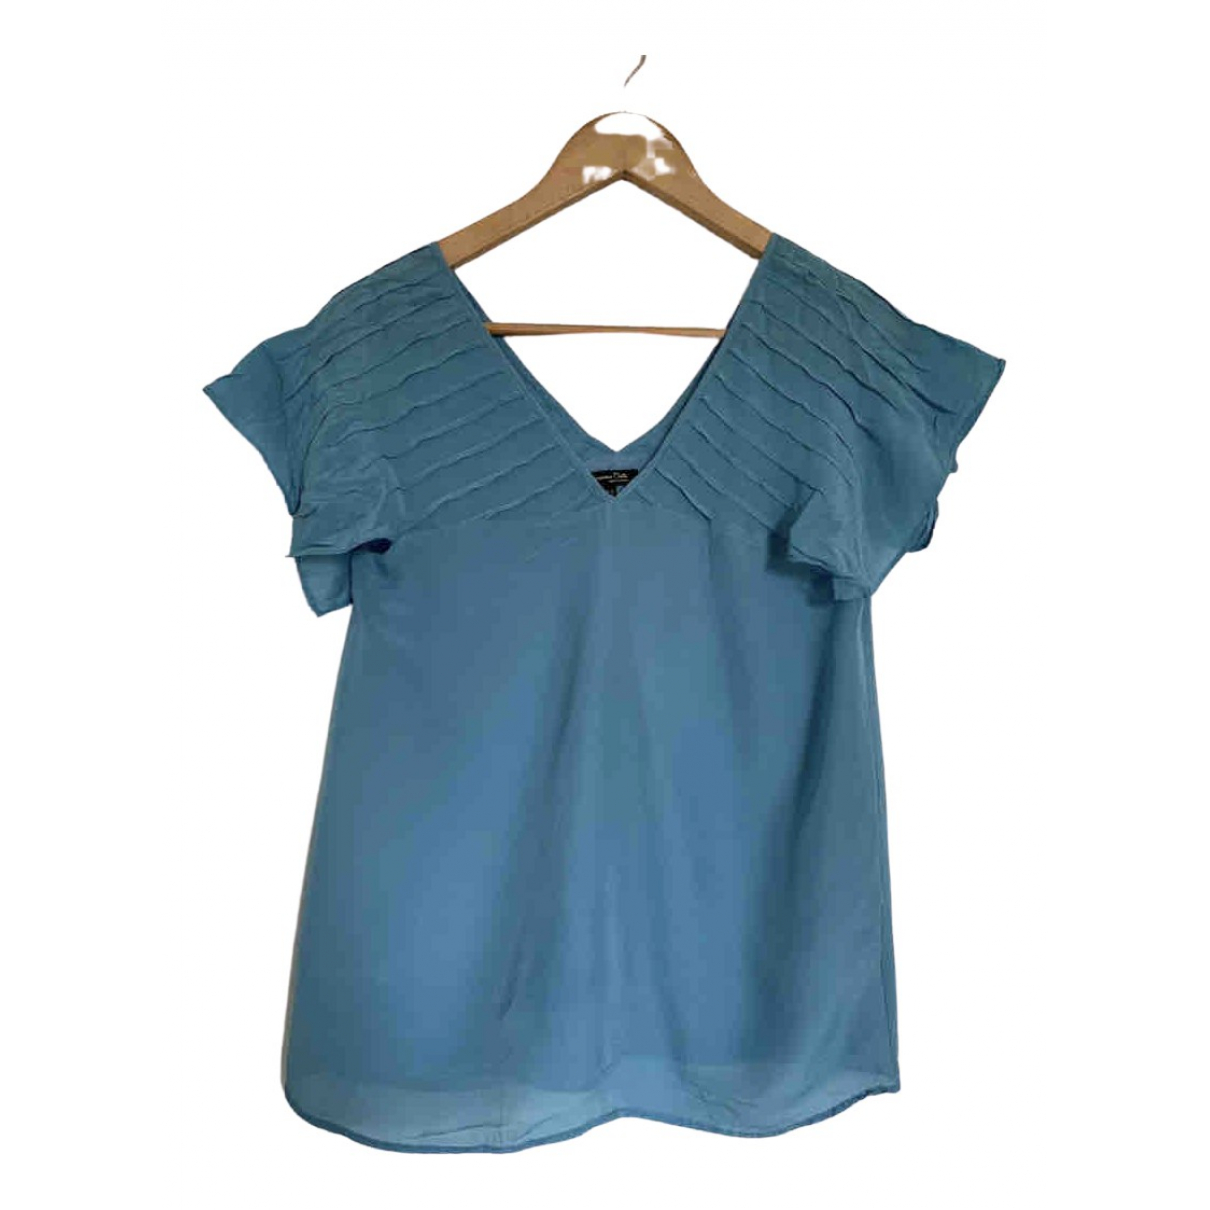 Massimo Dutti \N Blue  top for Women XS International